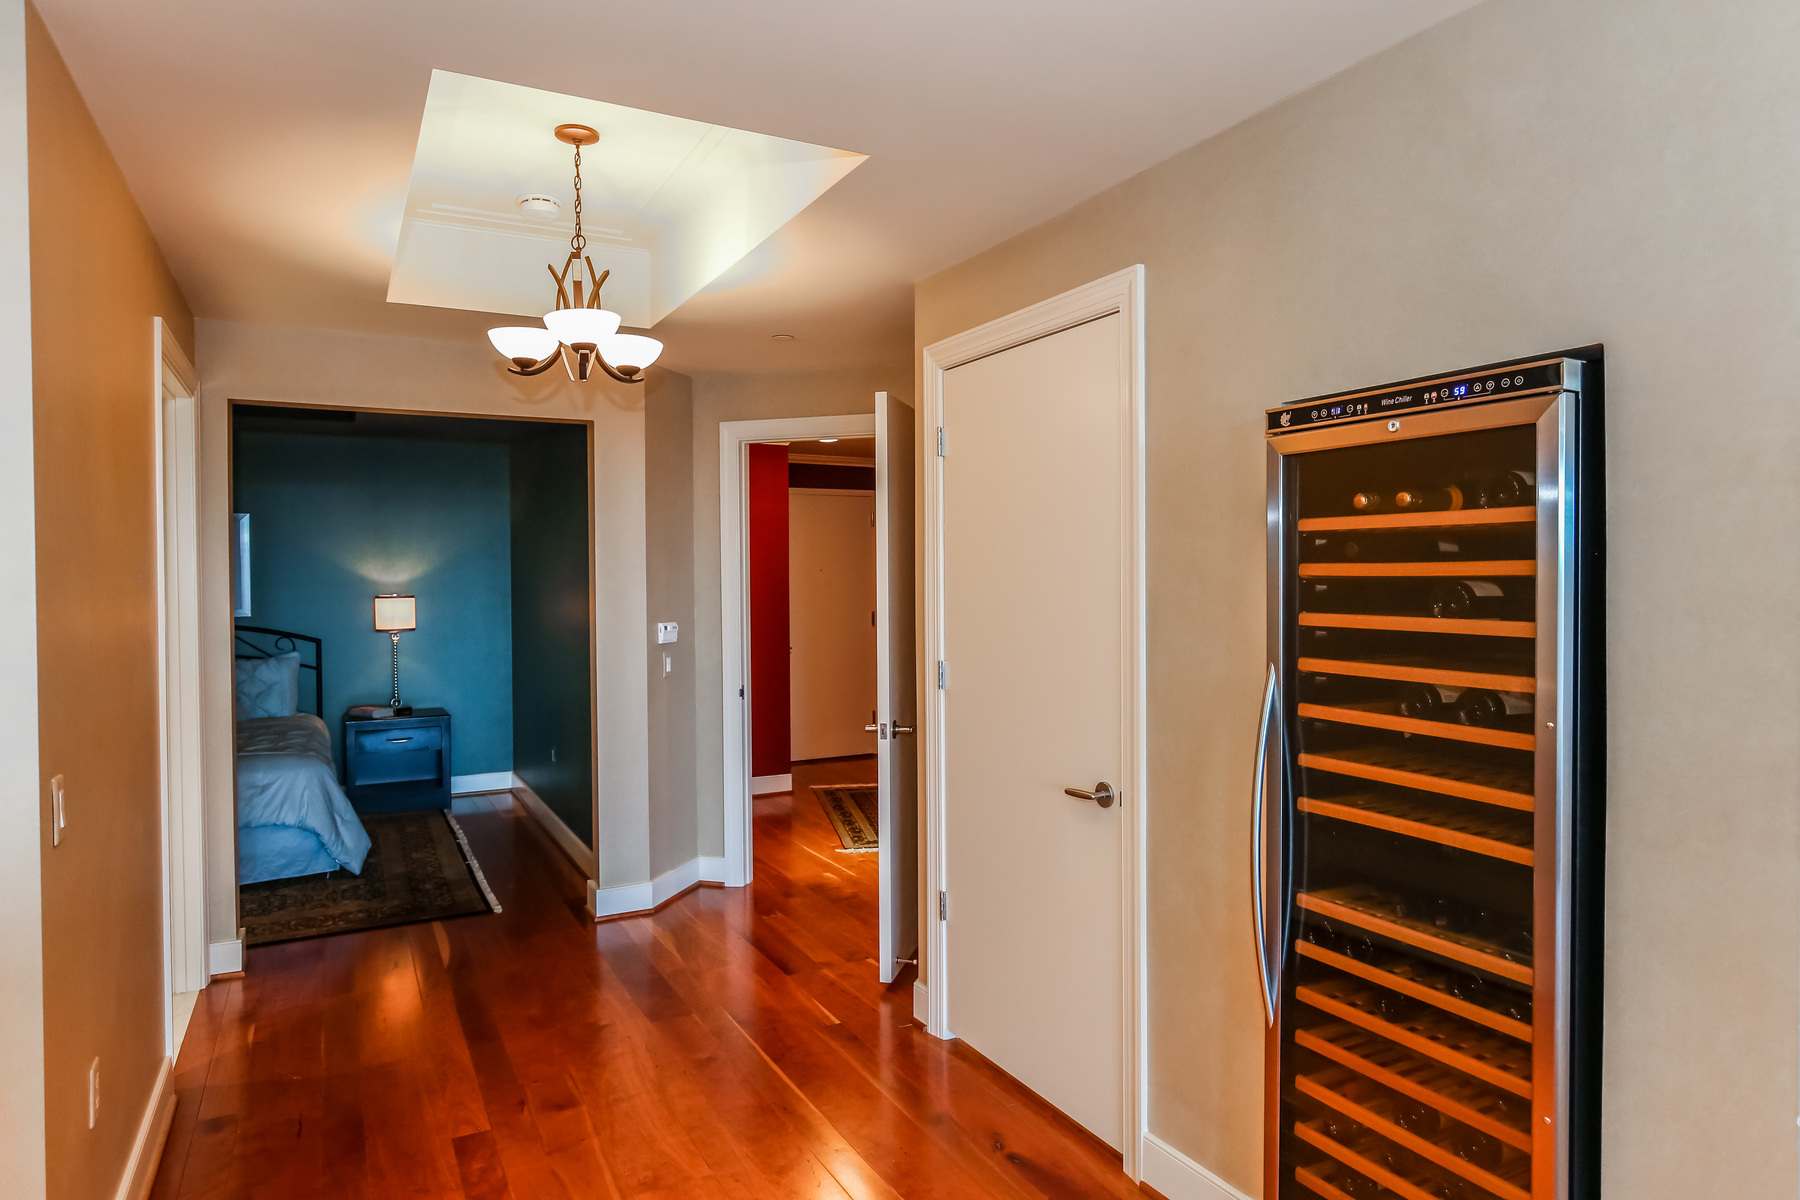 Additional photo for property listing at 1881 Nash Street N 1504, Arlington  Arlington, Virginia 22209 Estados Unidos